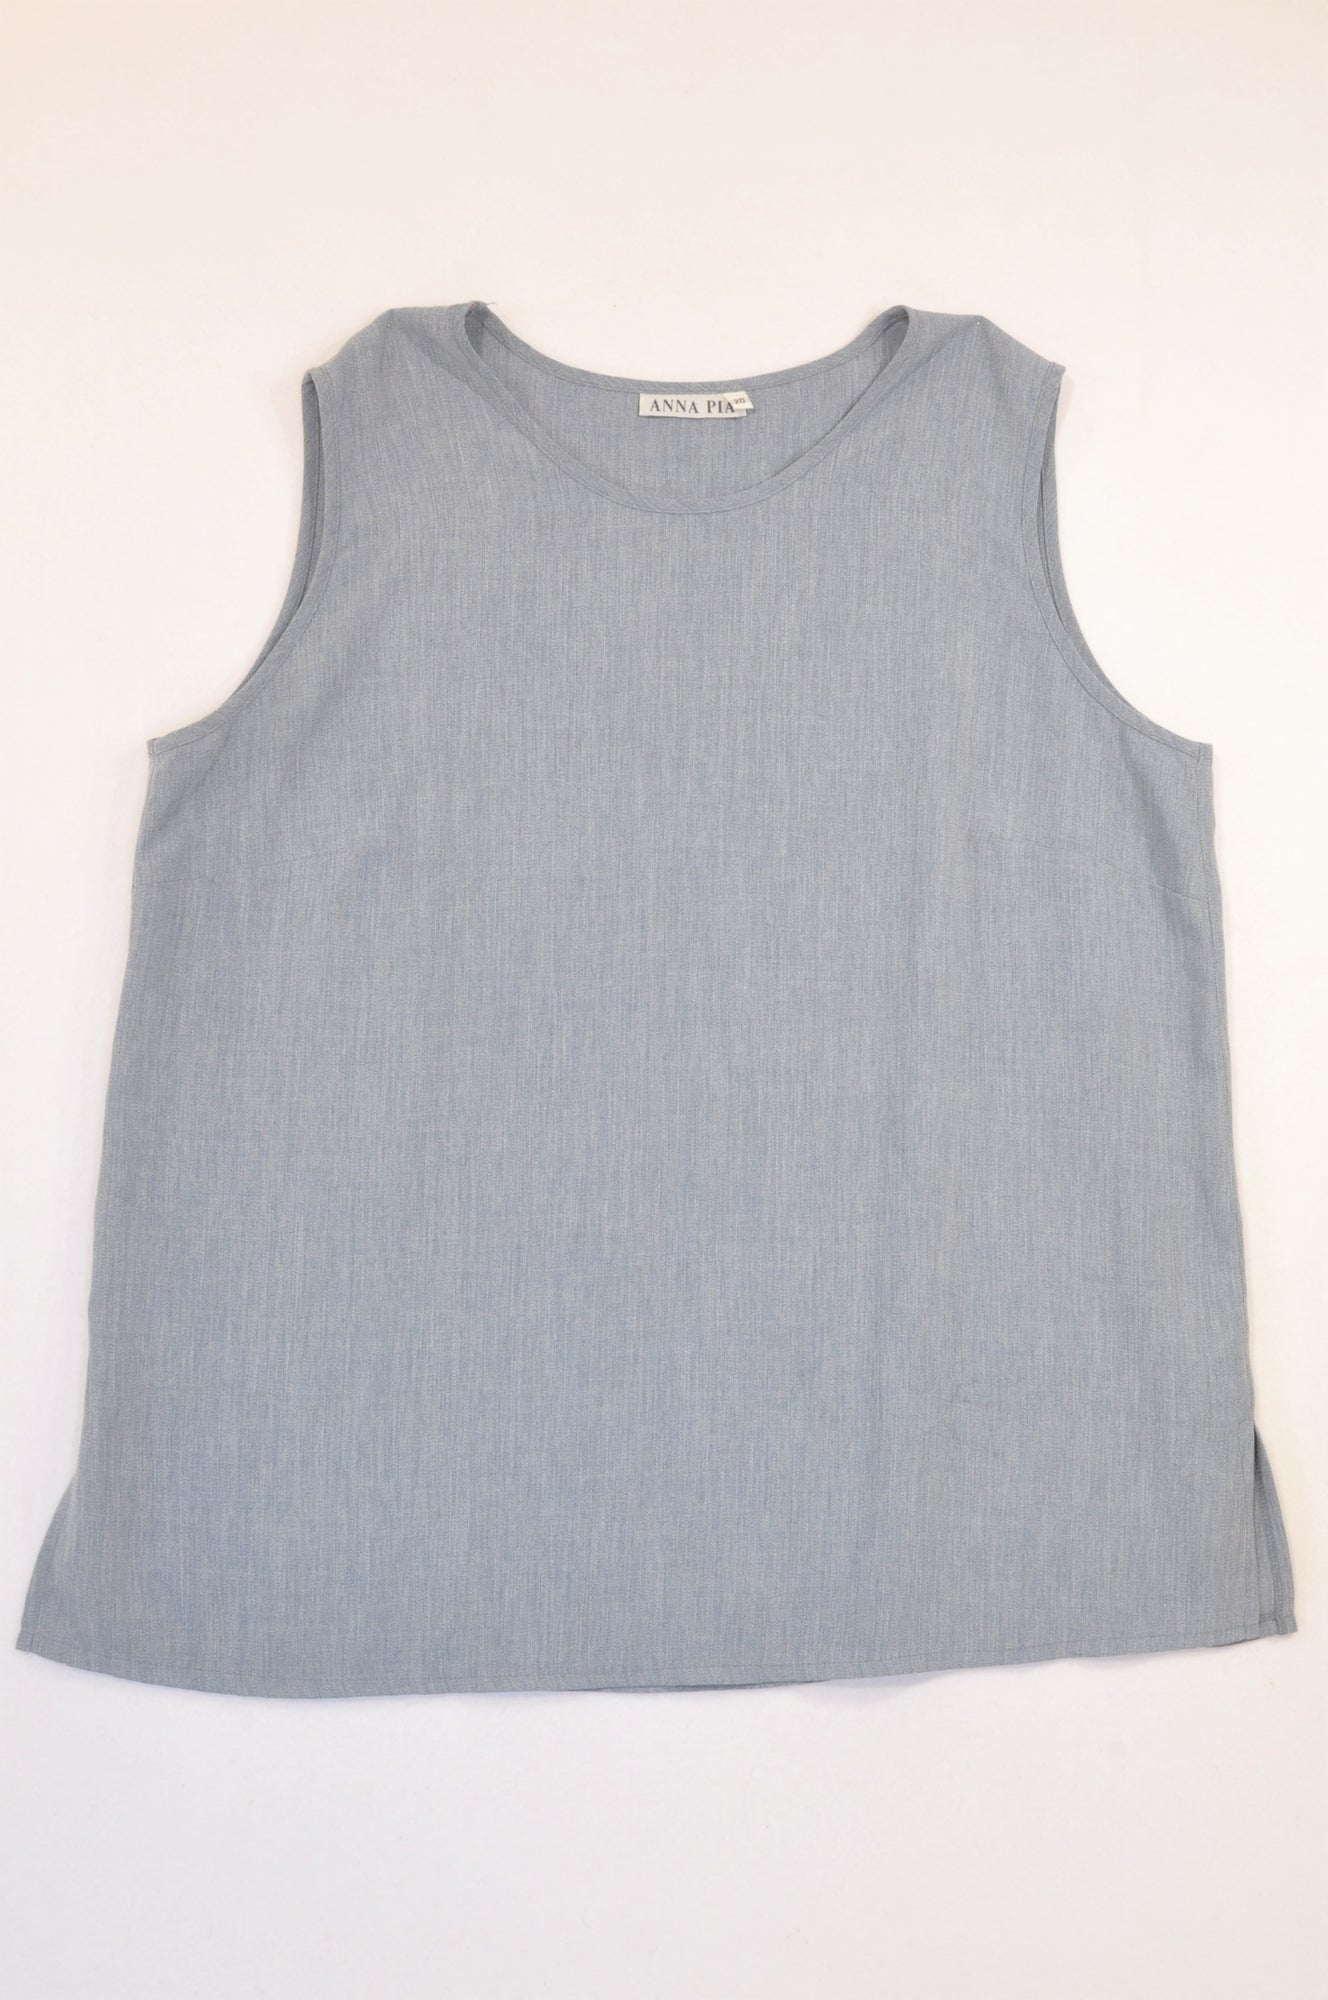 Anna Pia Light Blue Heathered Broad Strap Blouse Women Size 20